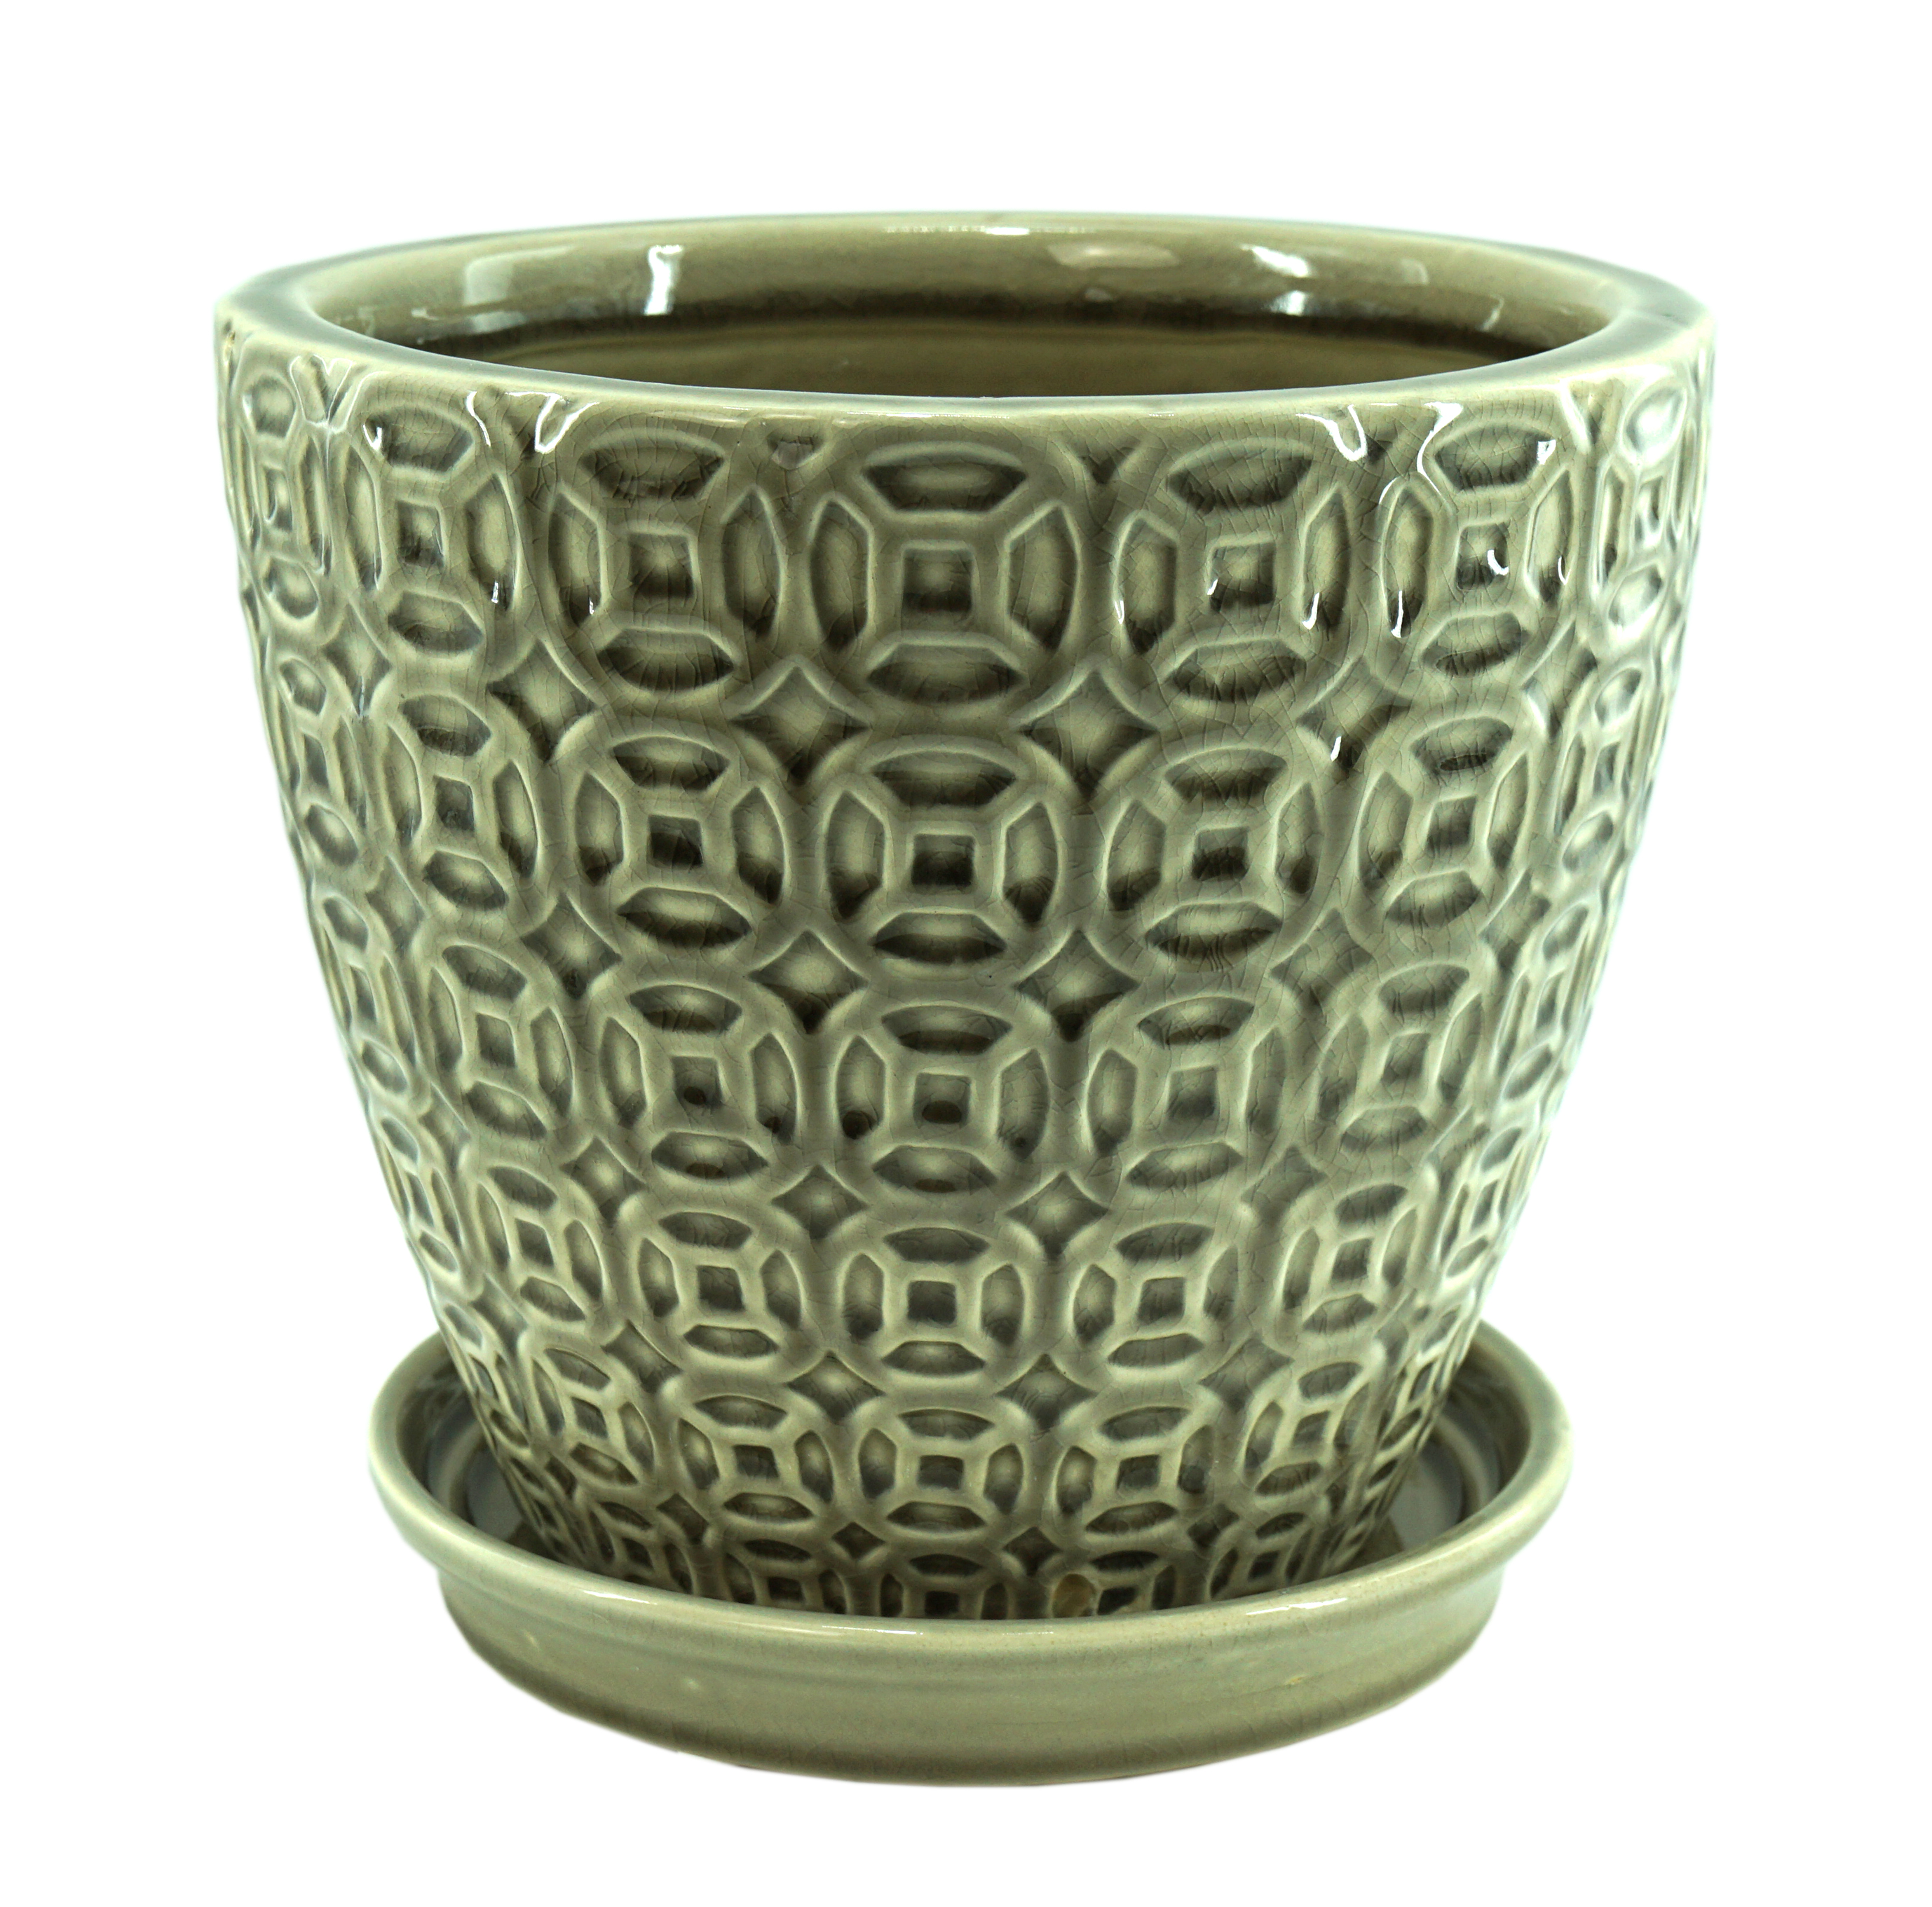 Better Homes&gardens Pottery-11in greige pot